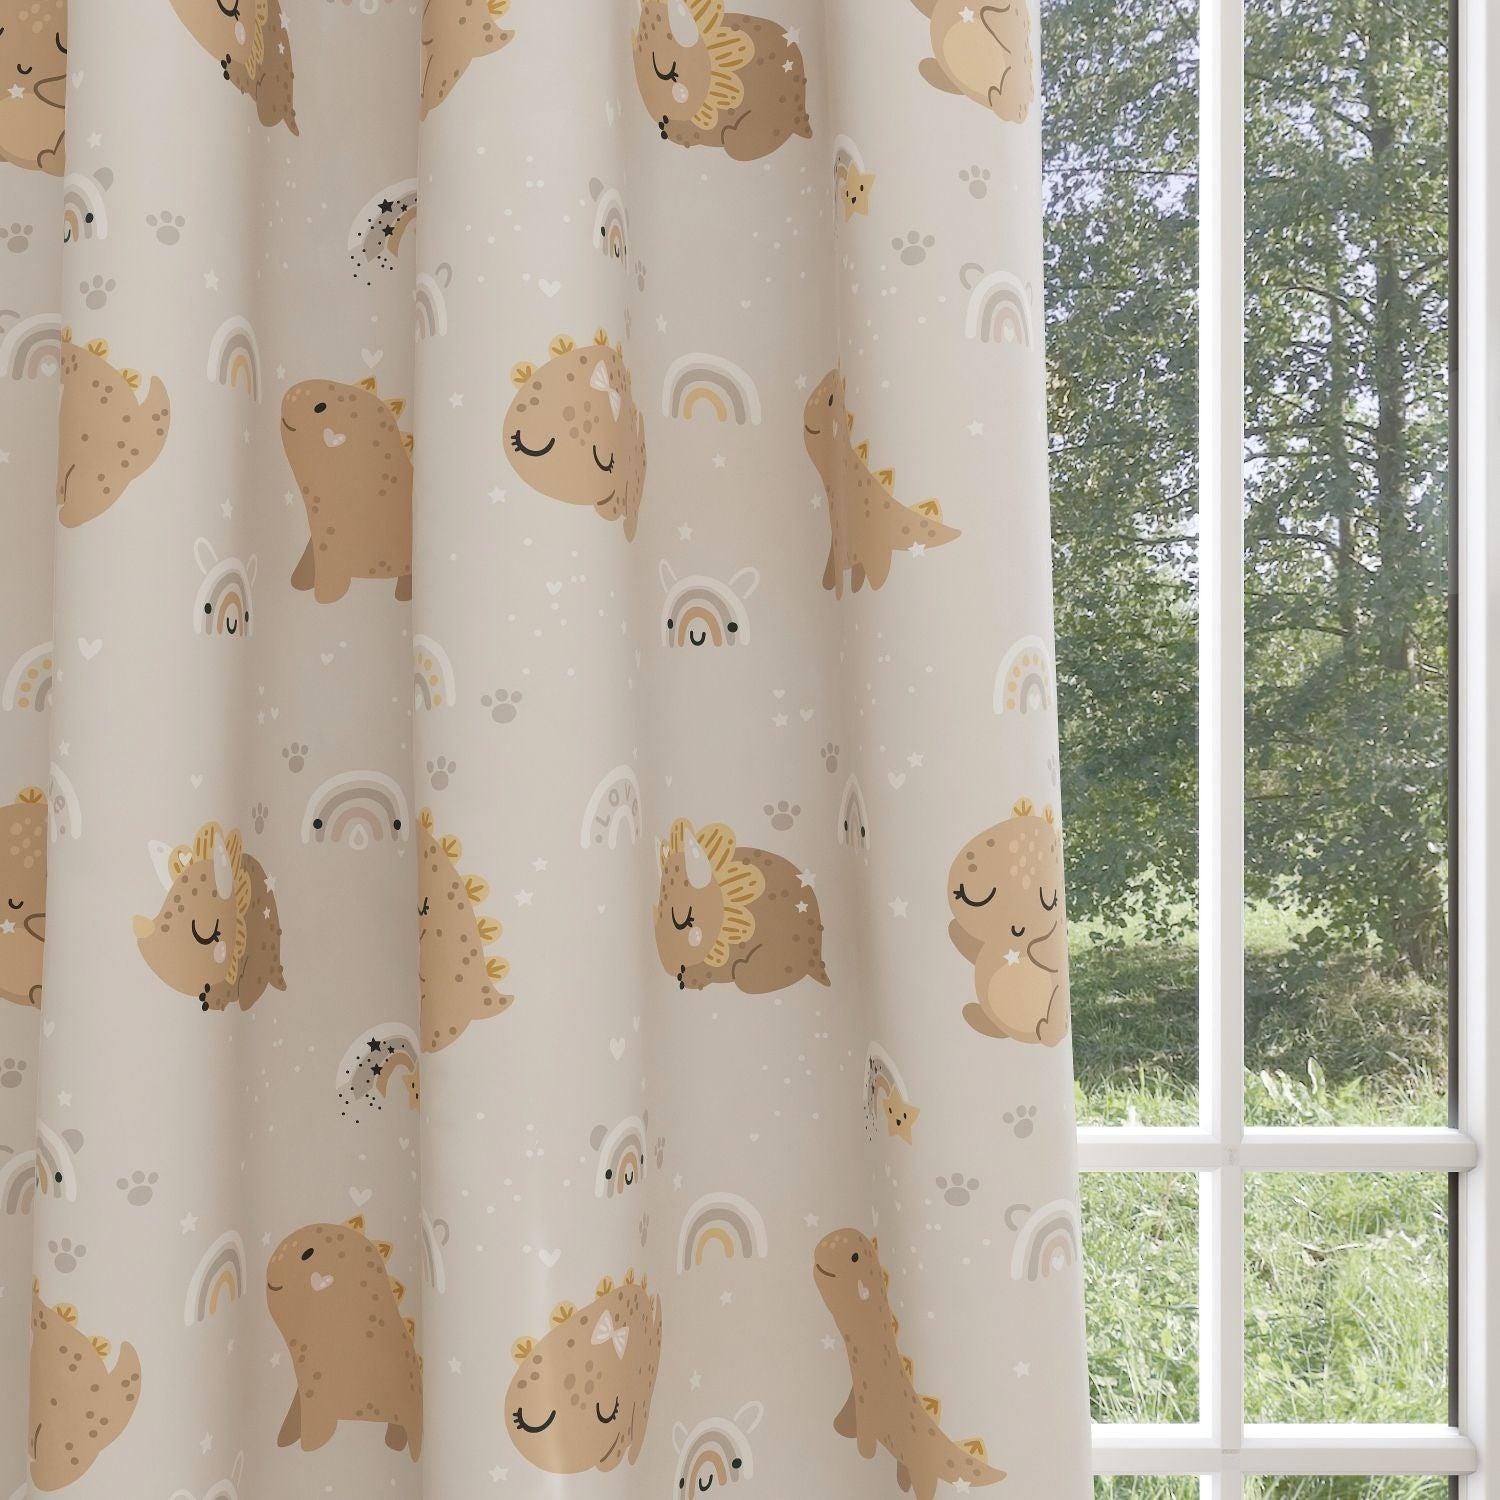 Dinosaur Kids & Nursery Blackout Curtains - Lights Out